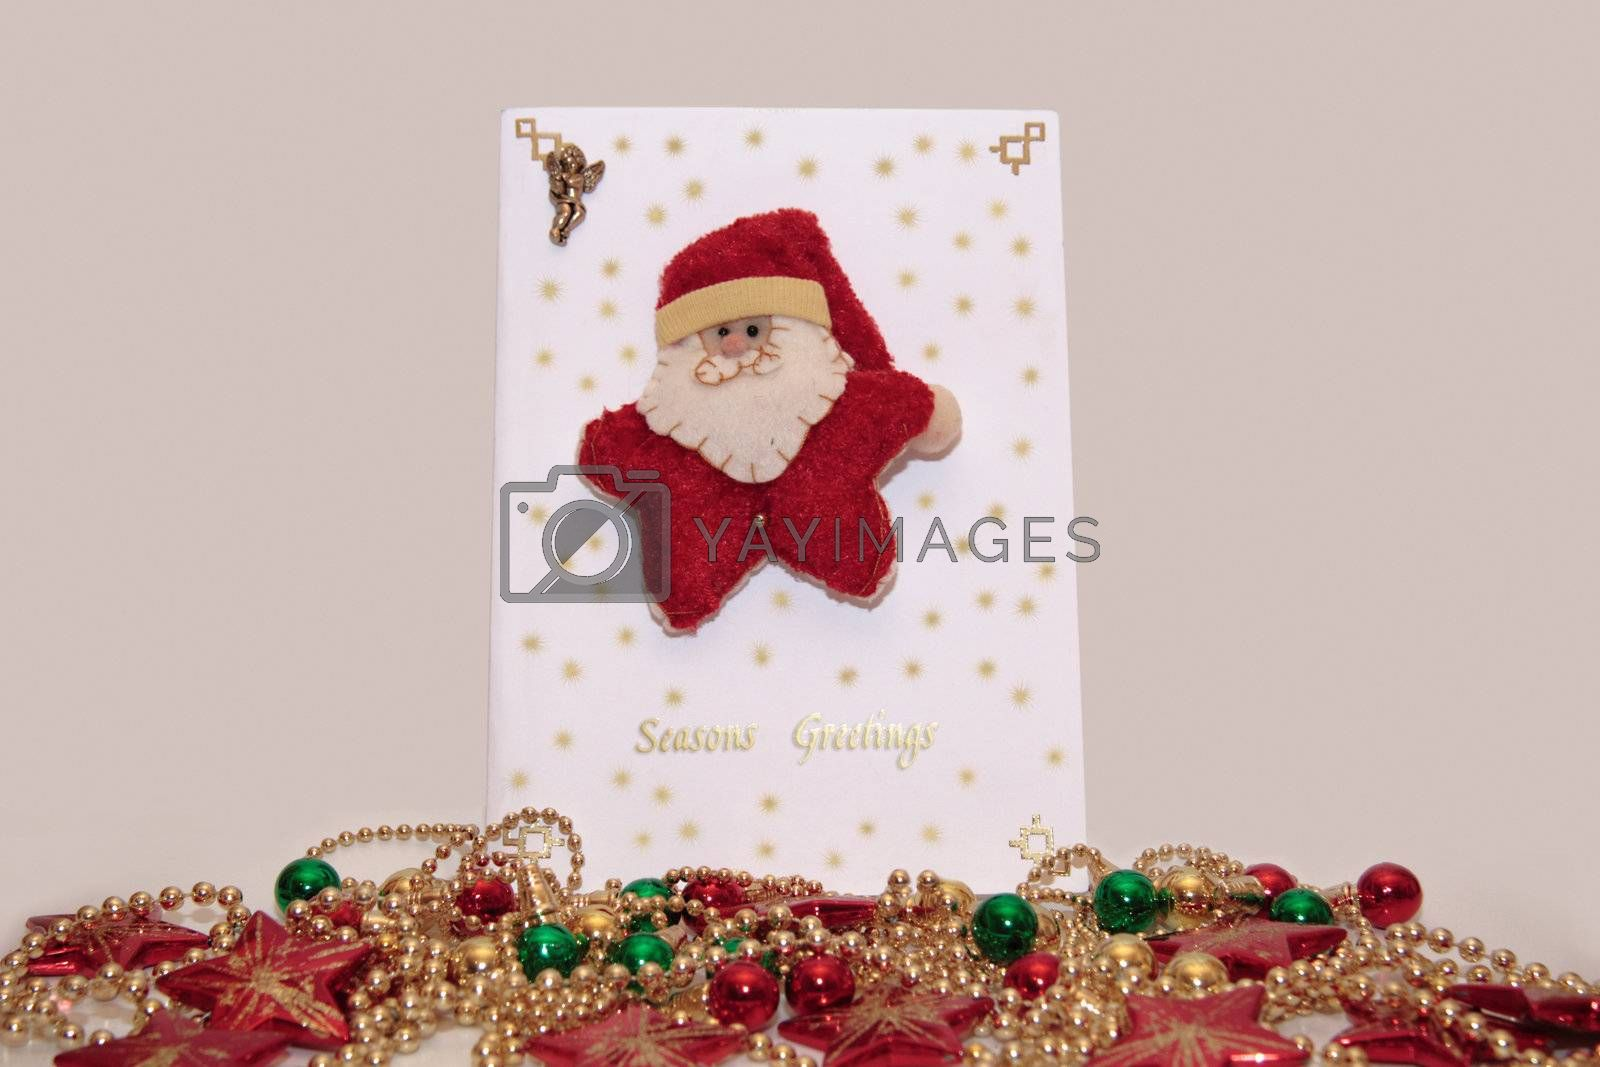 xmas card with a decorated background